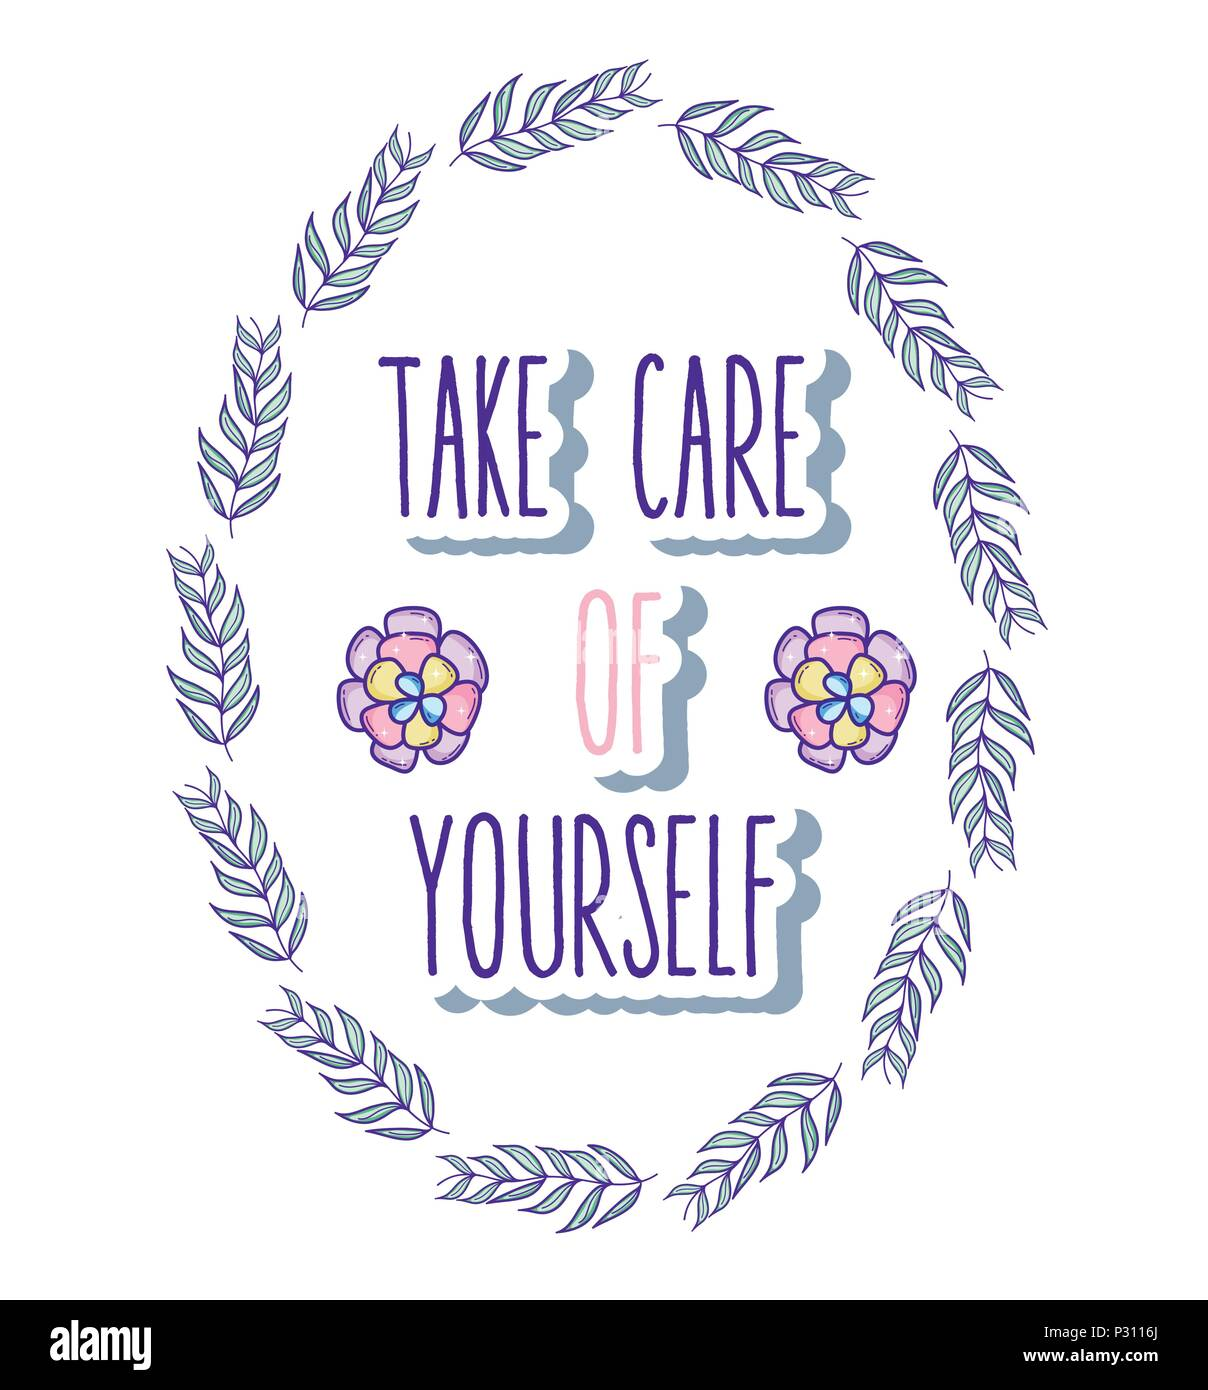 Take care of yourself quote - Stock Image